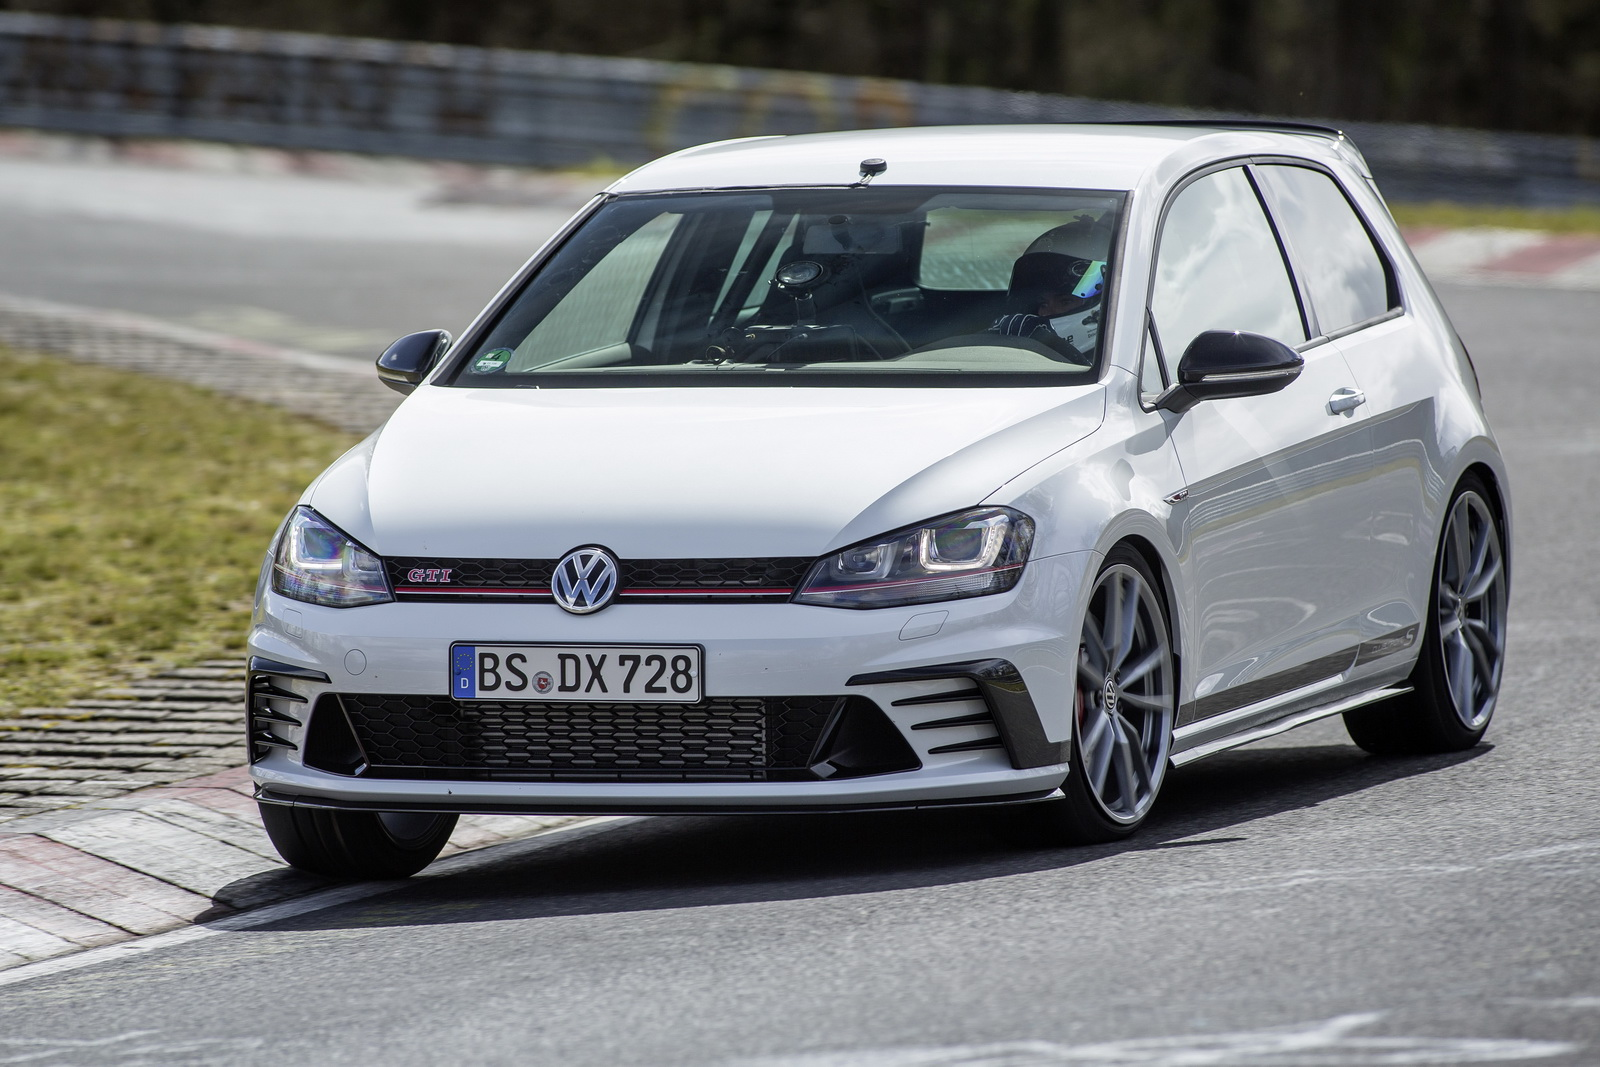 vw golf gti clubsport s already sold out in the uk carscoops. Black Bedroom Furniture Sets. Home Design Ideas